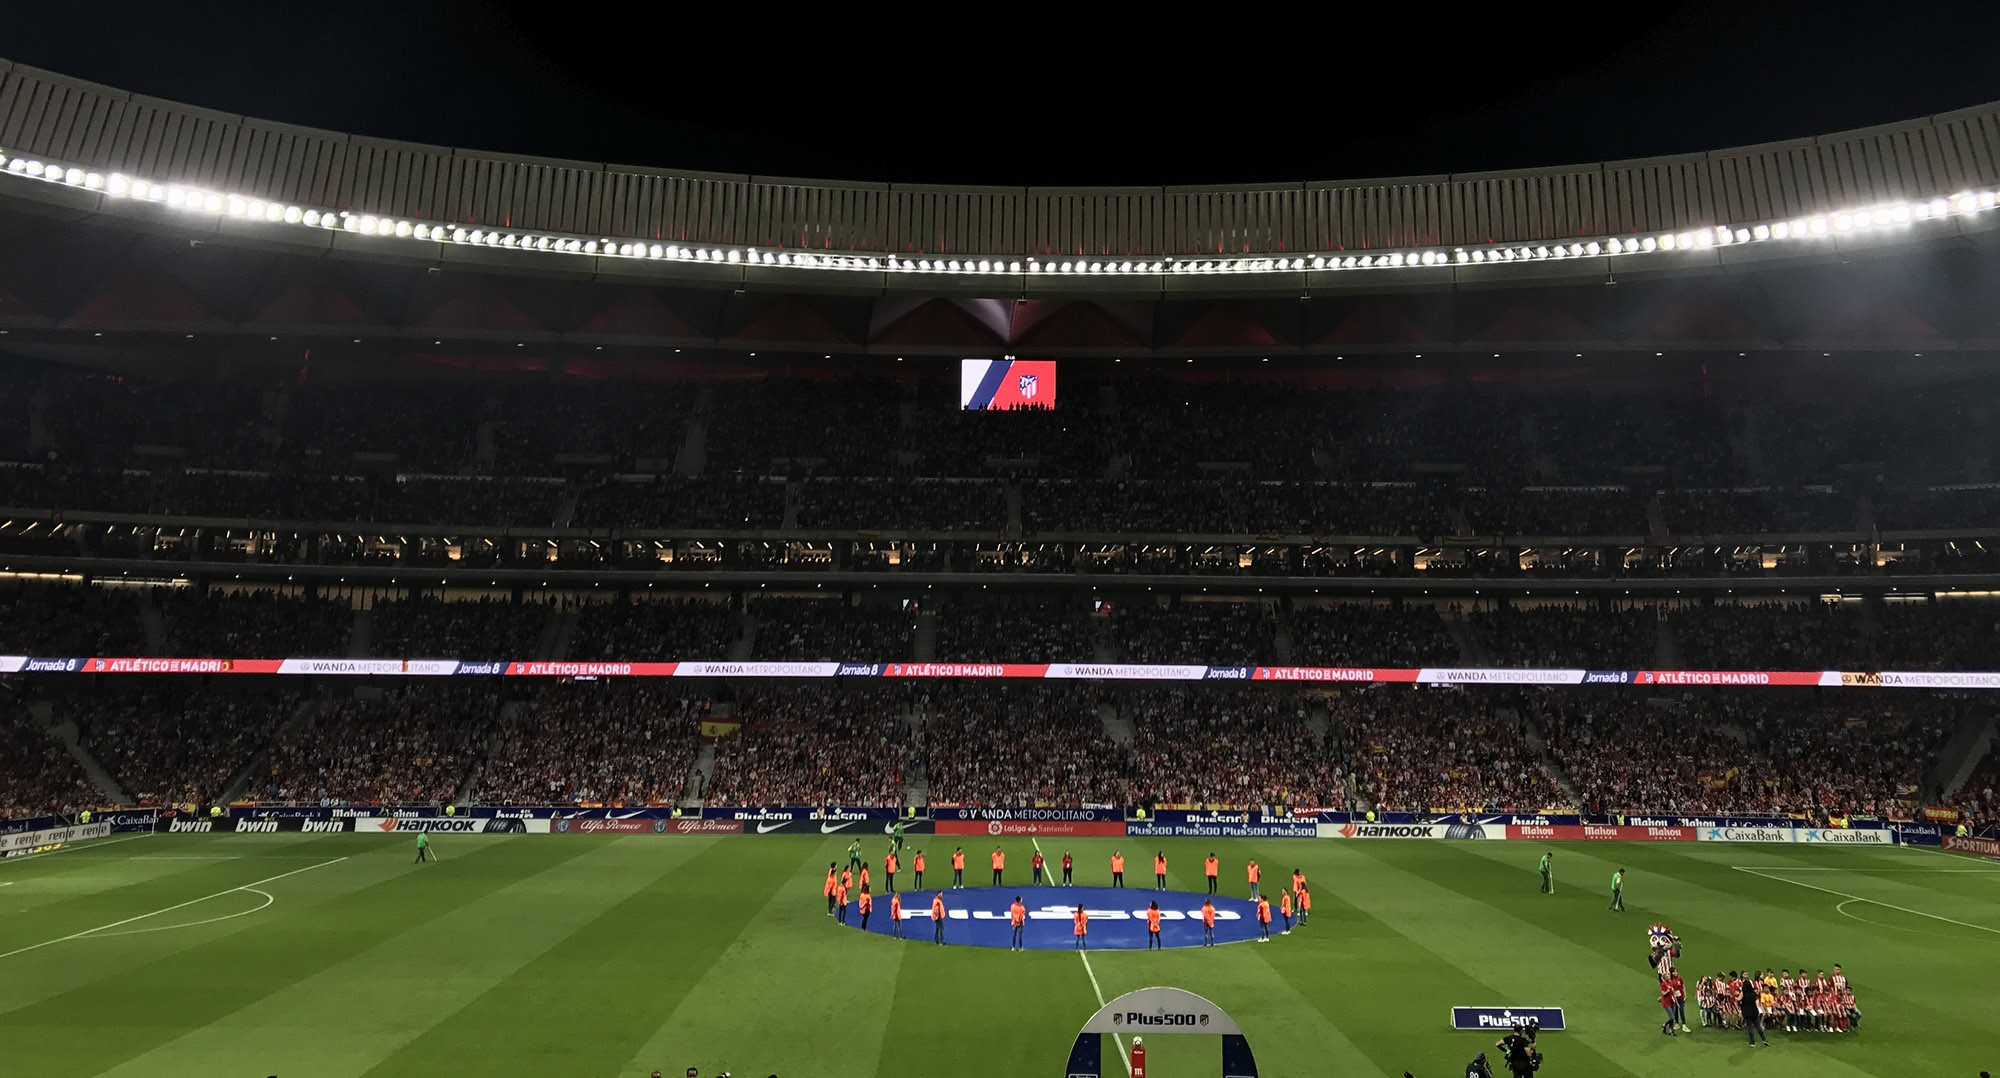 A wide view of Atletico de Madrid's football stadium with LG's signage in the background